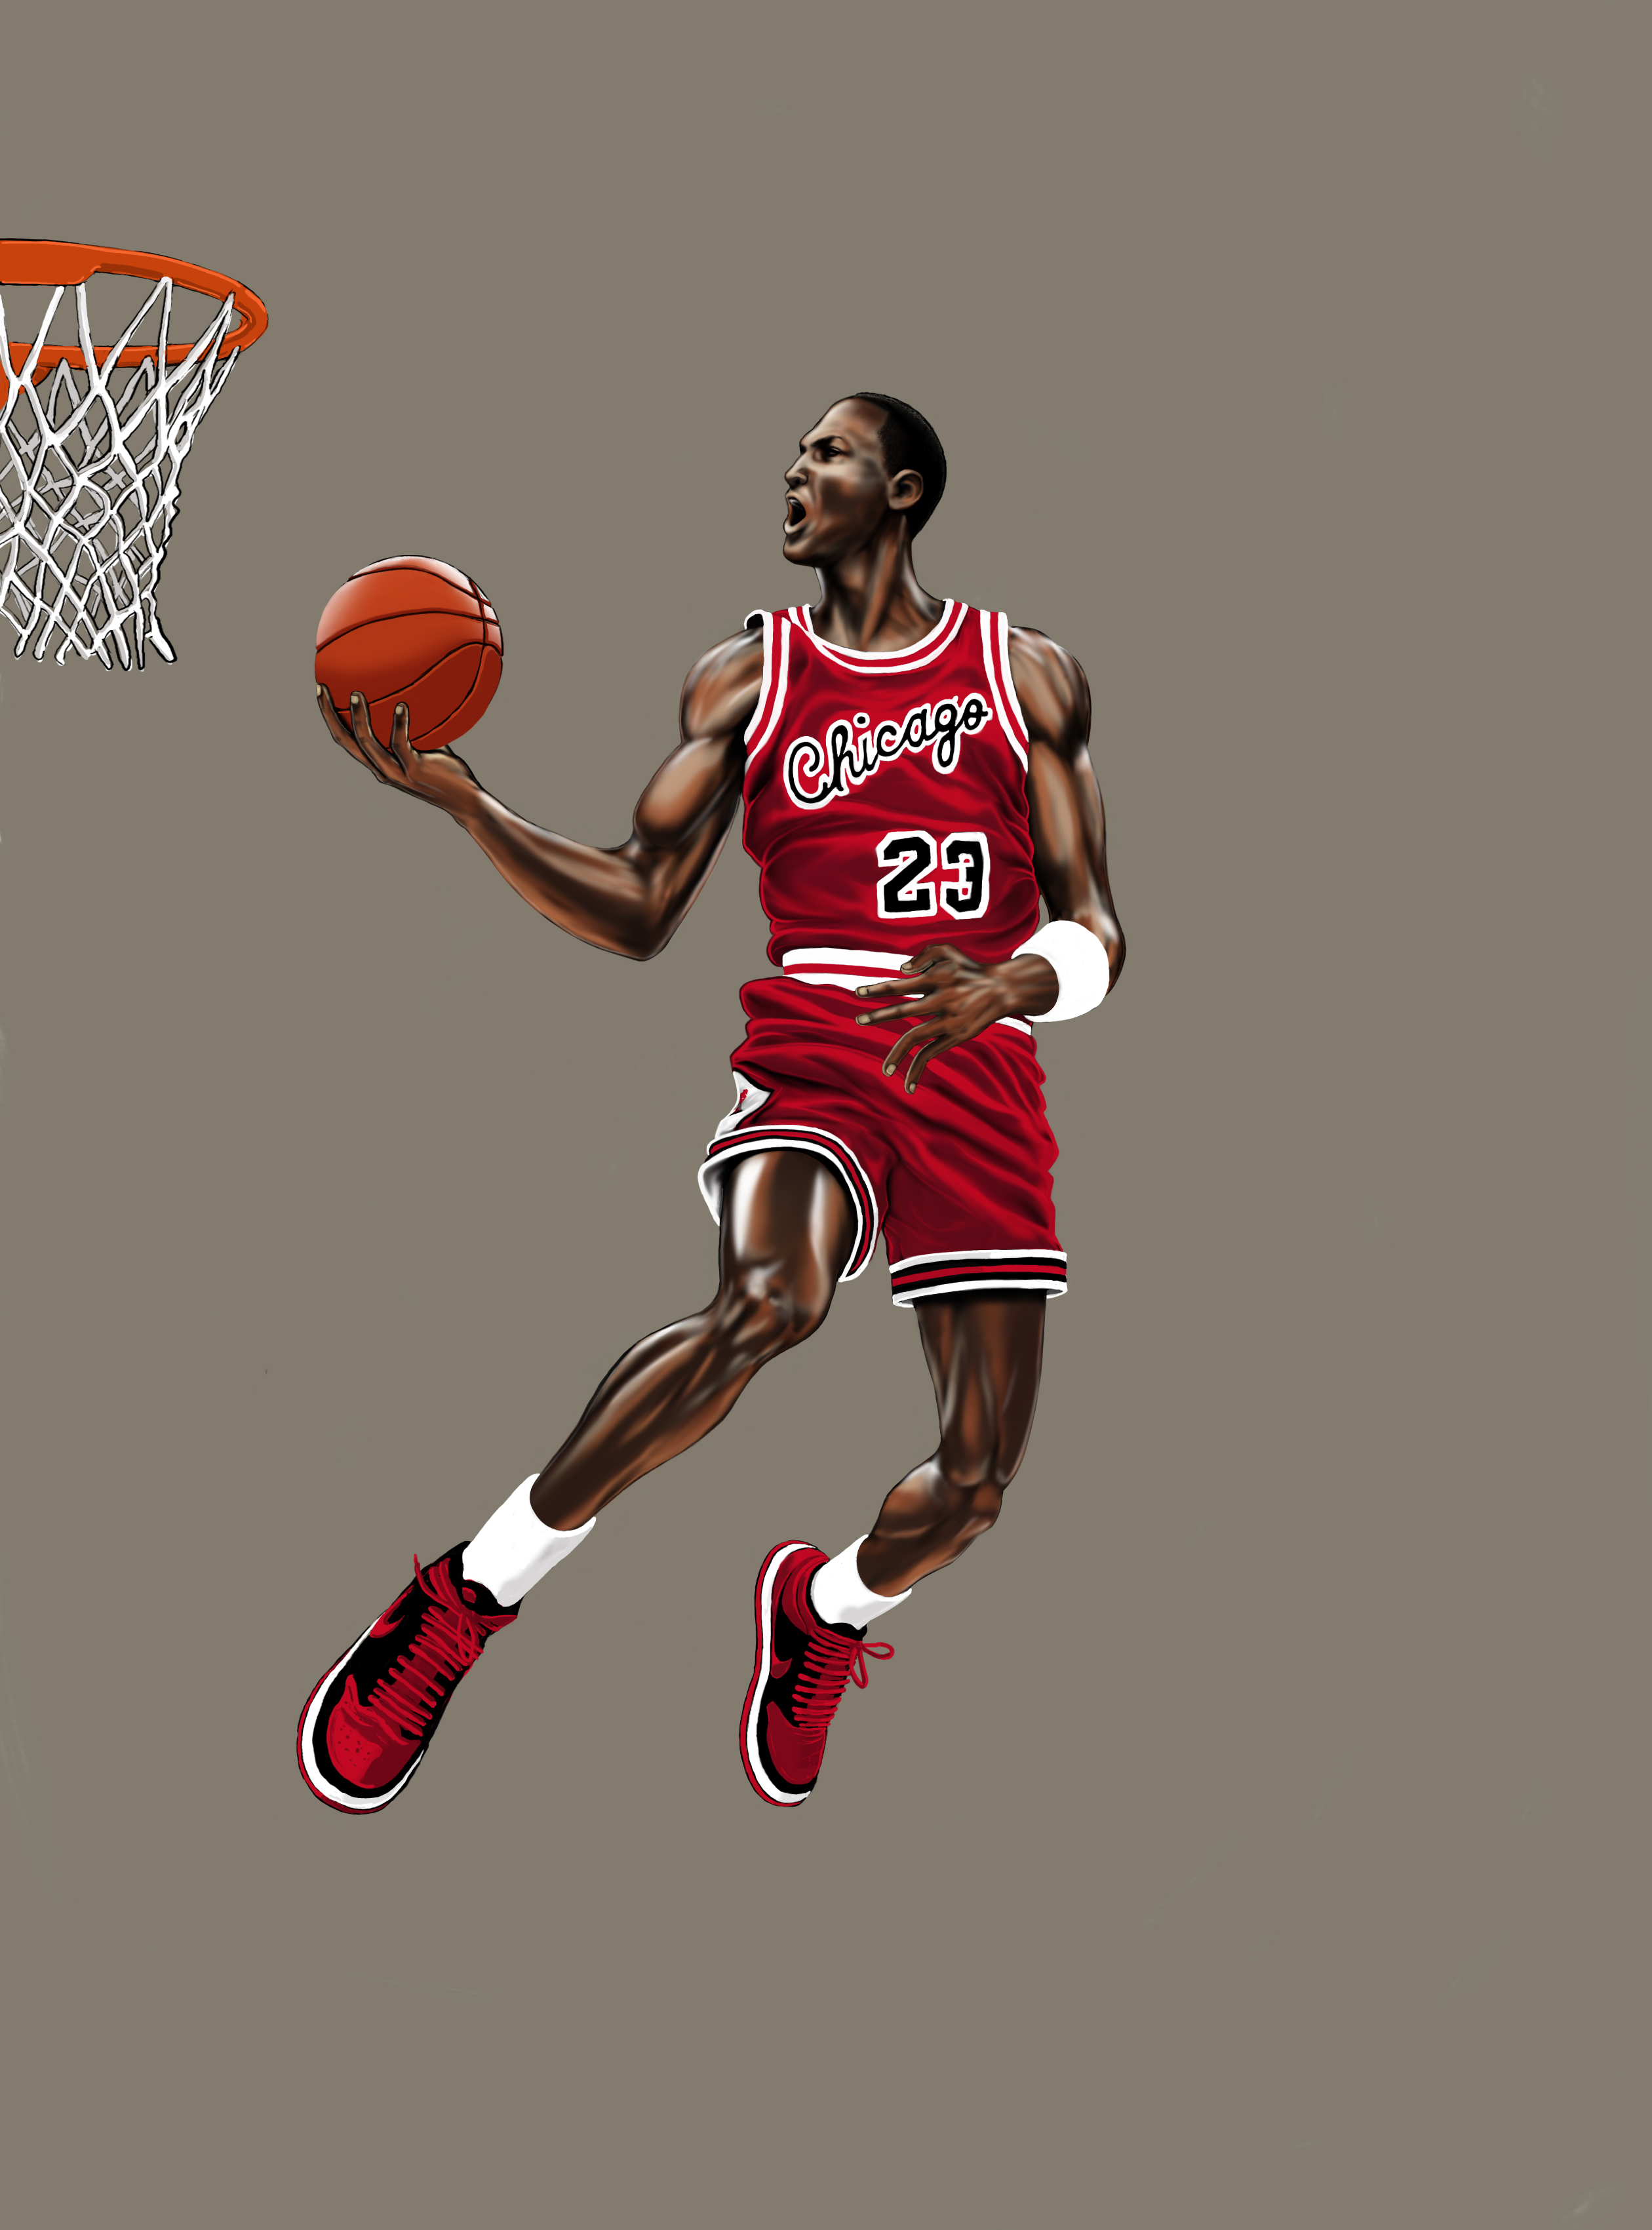 michael jordans manipulation of the market at will achieved by becoming the greatest sports figure i